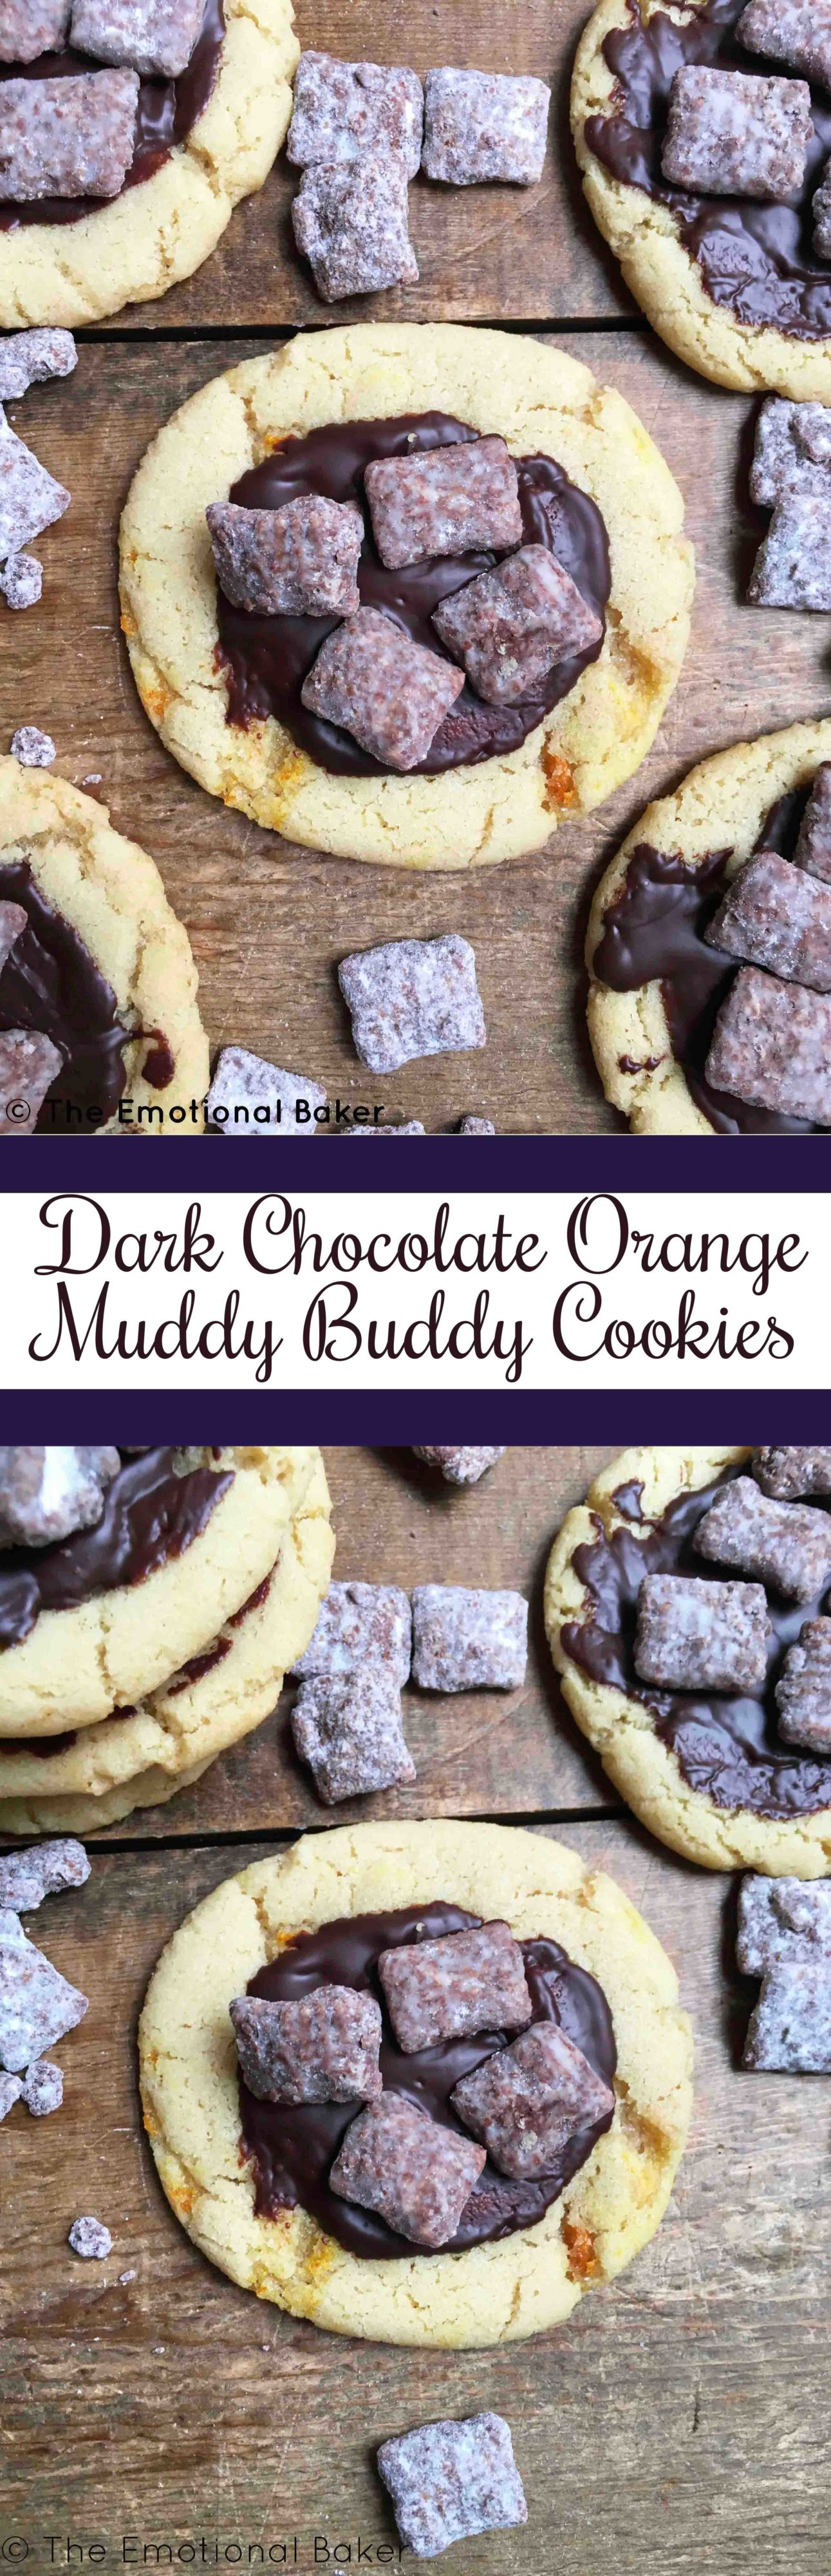 Dark Chocolate Orange Muddy Buddy Cookies